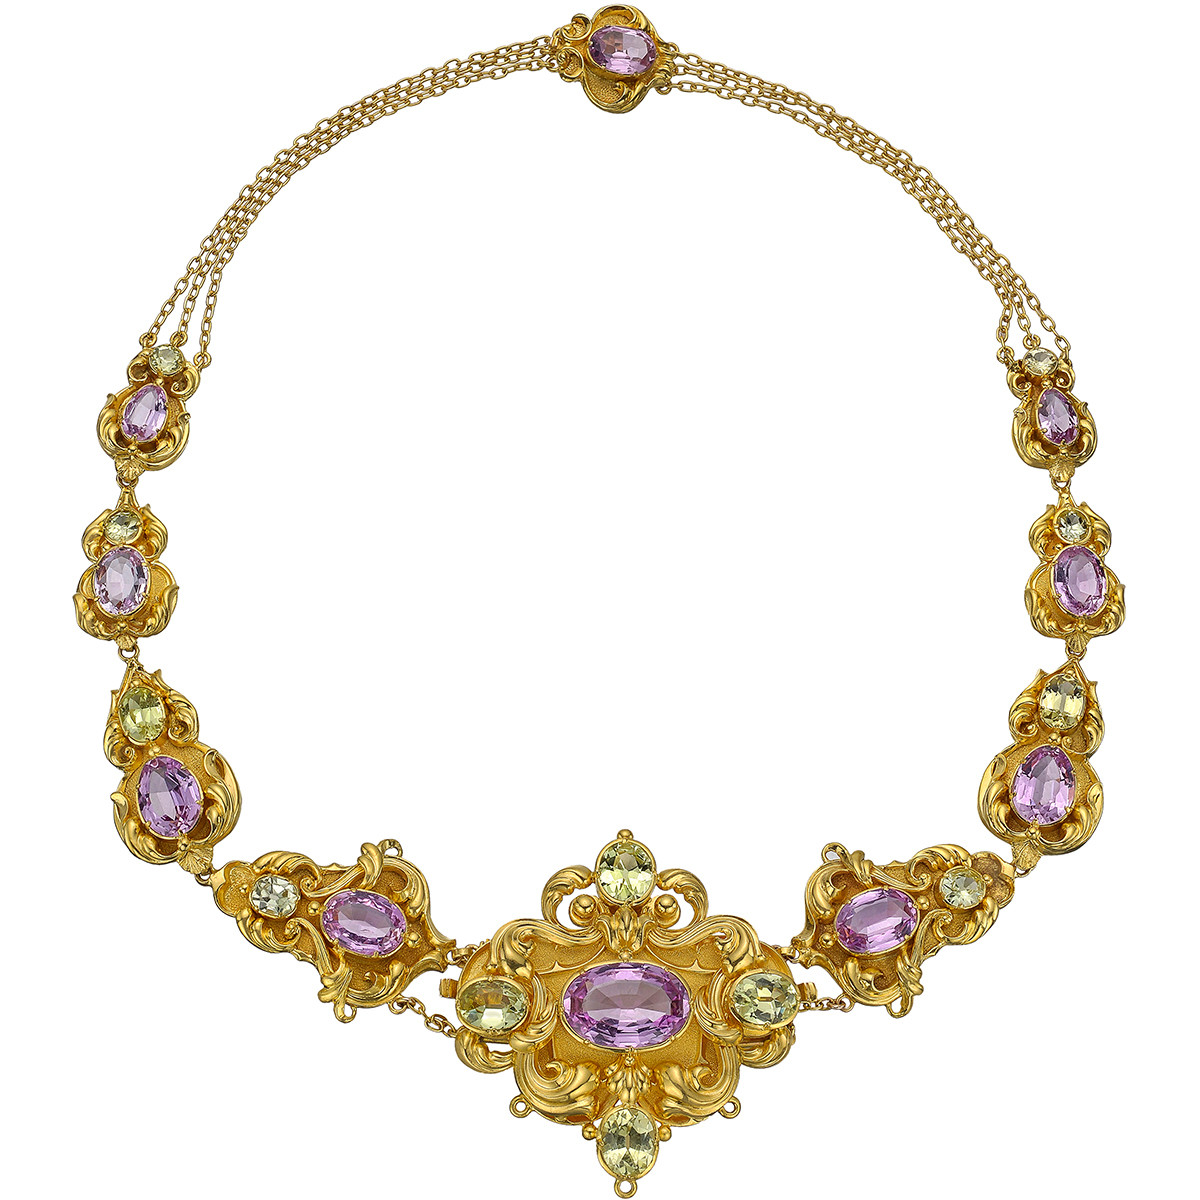 Georgian Pink Topaz & Chrysoberyl Link Necklace